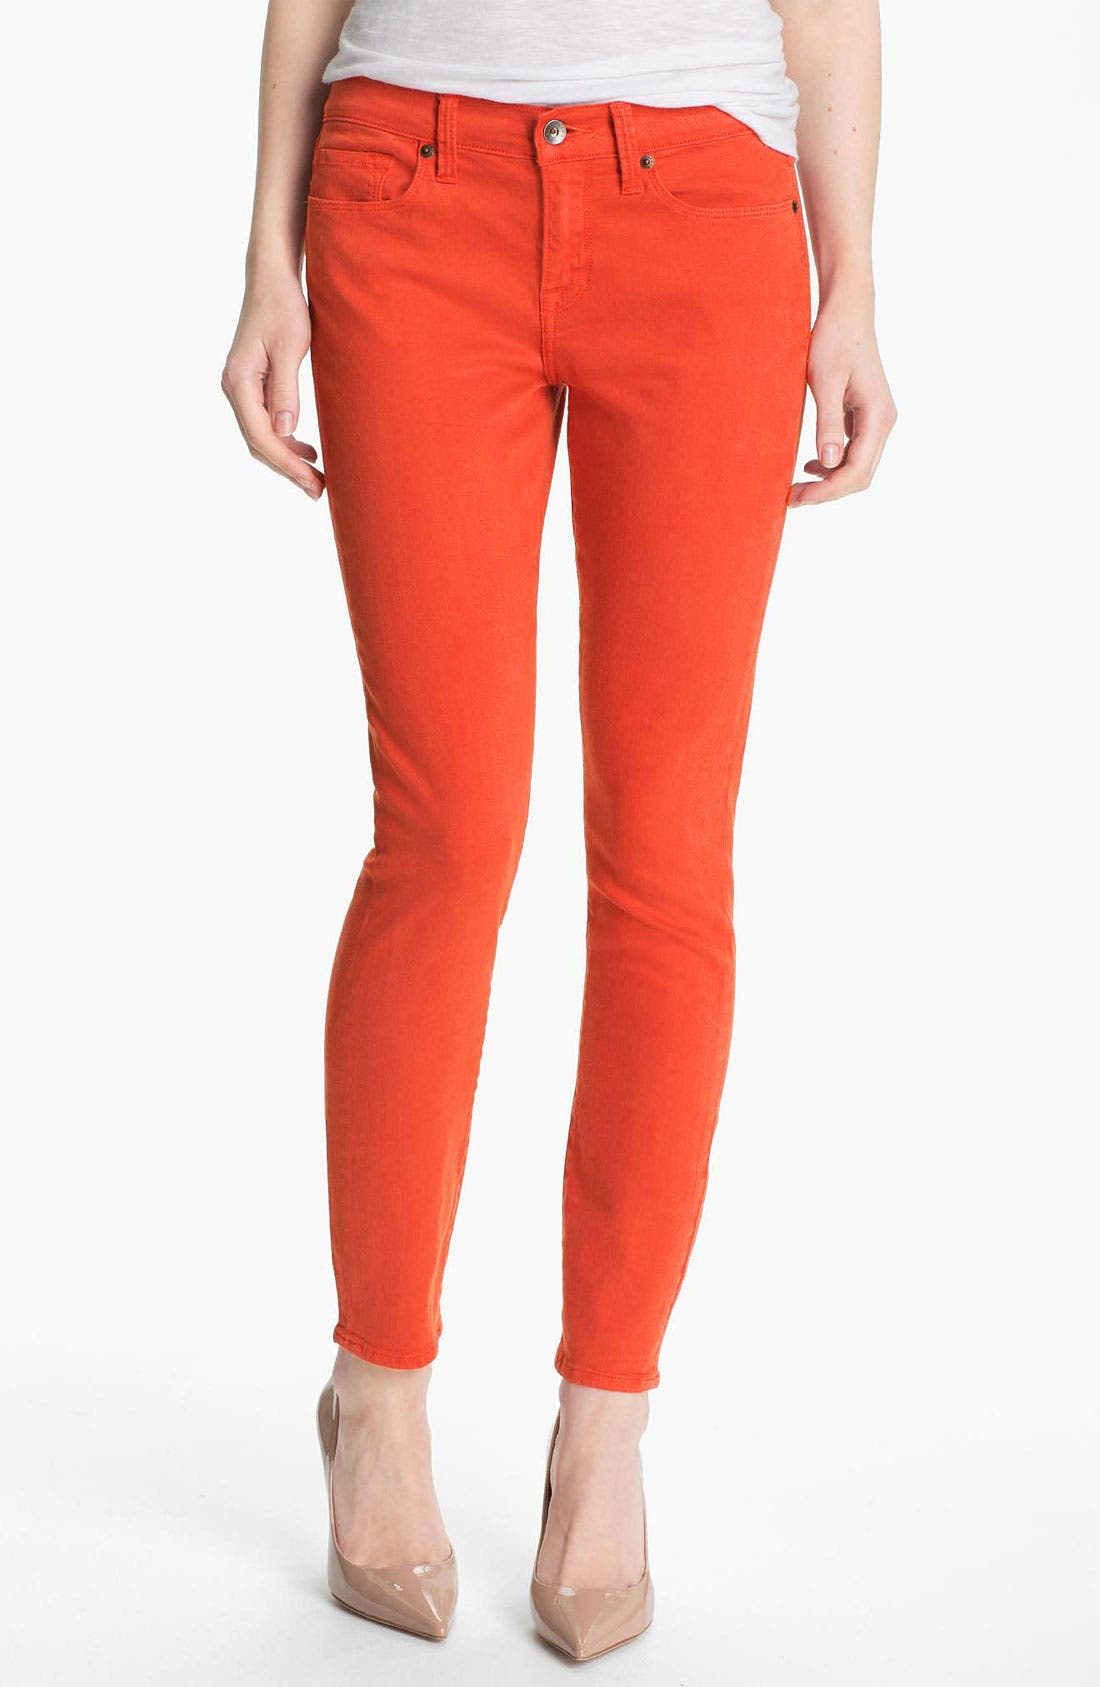 Main Image - Lucky Brand 'Sofia' Colored Denim Skinny Jeans